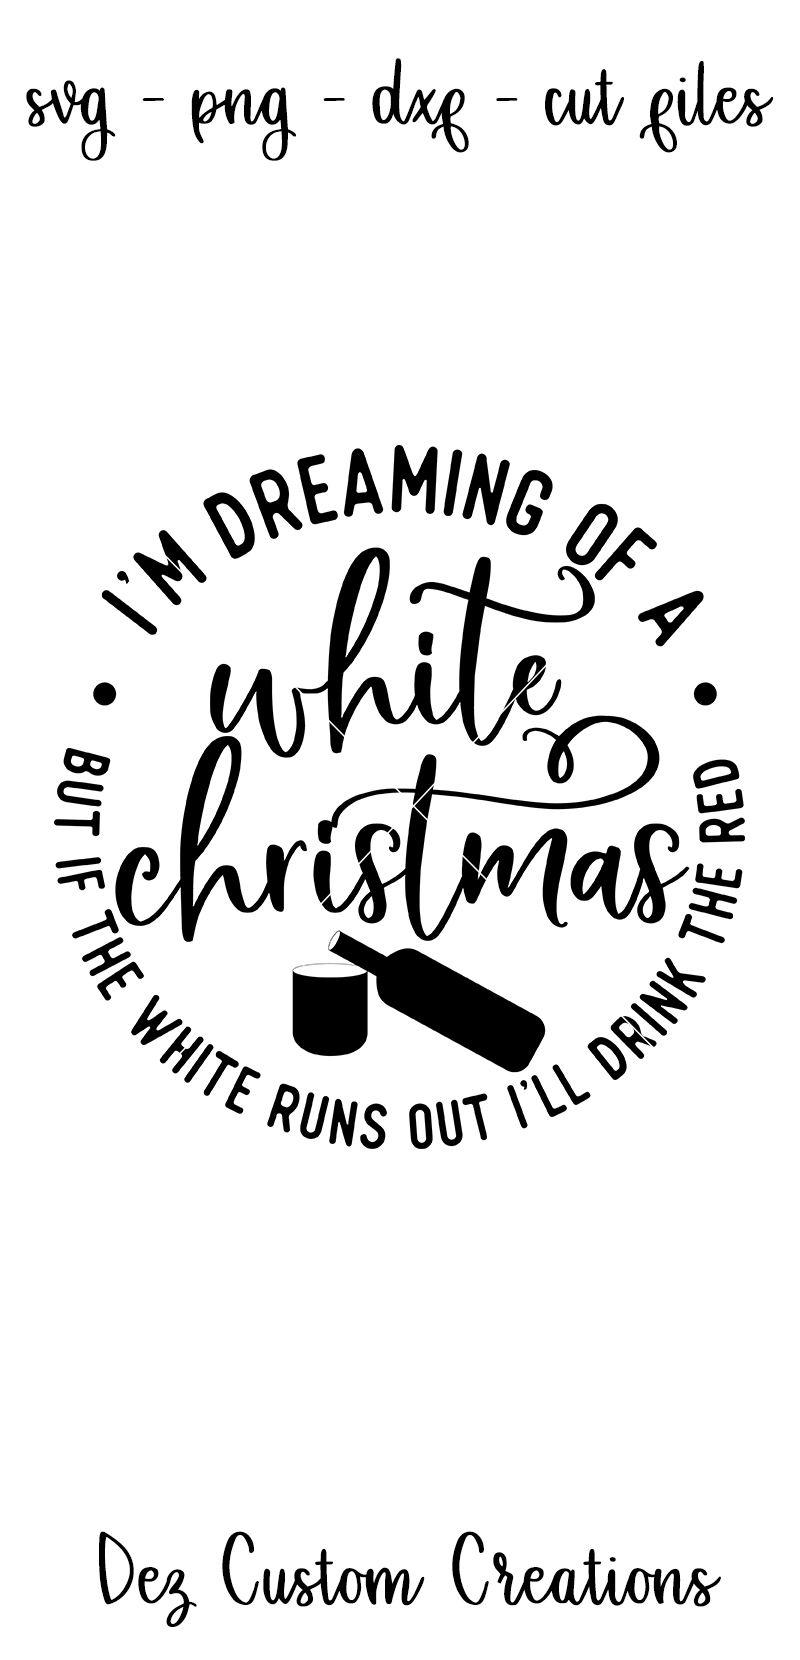 I'm Dreaming of a White Christmas - Wine - SVG DXF PNG files example image 3